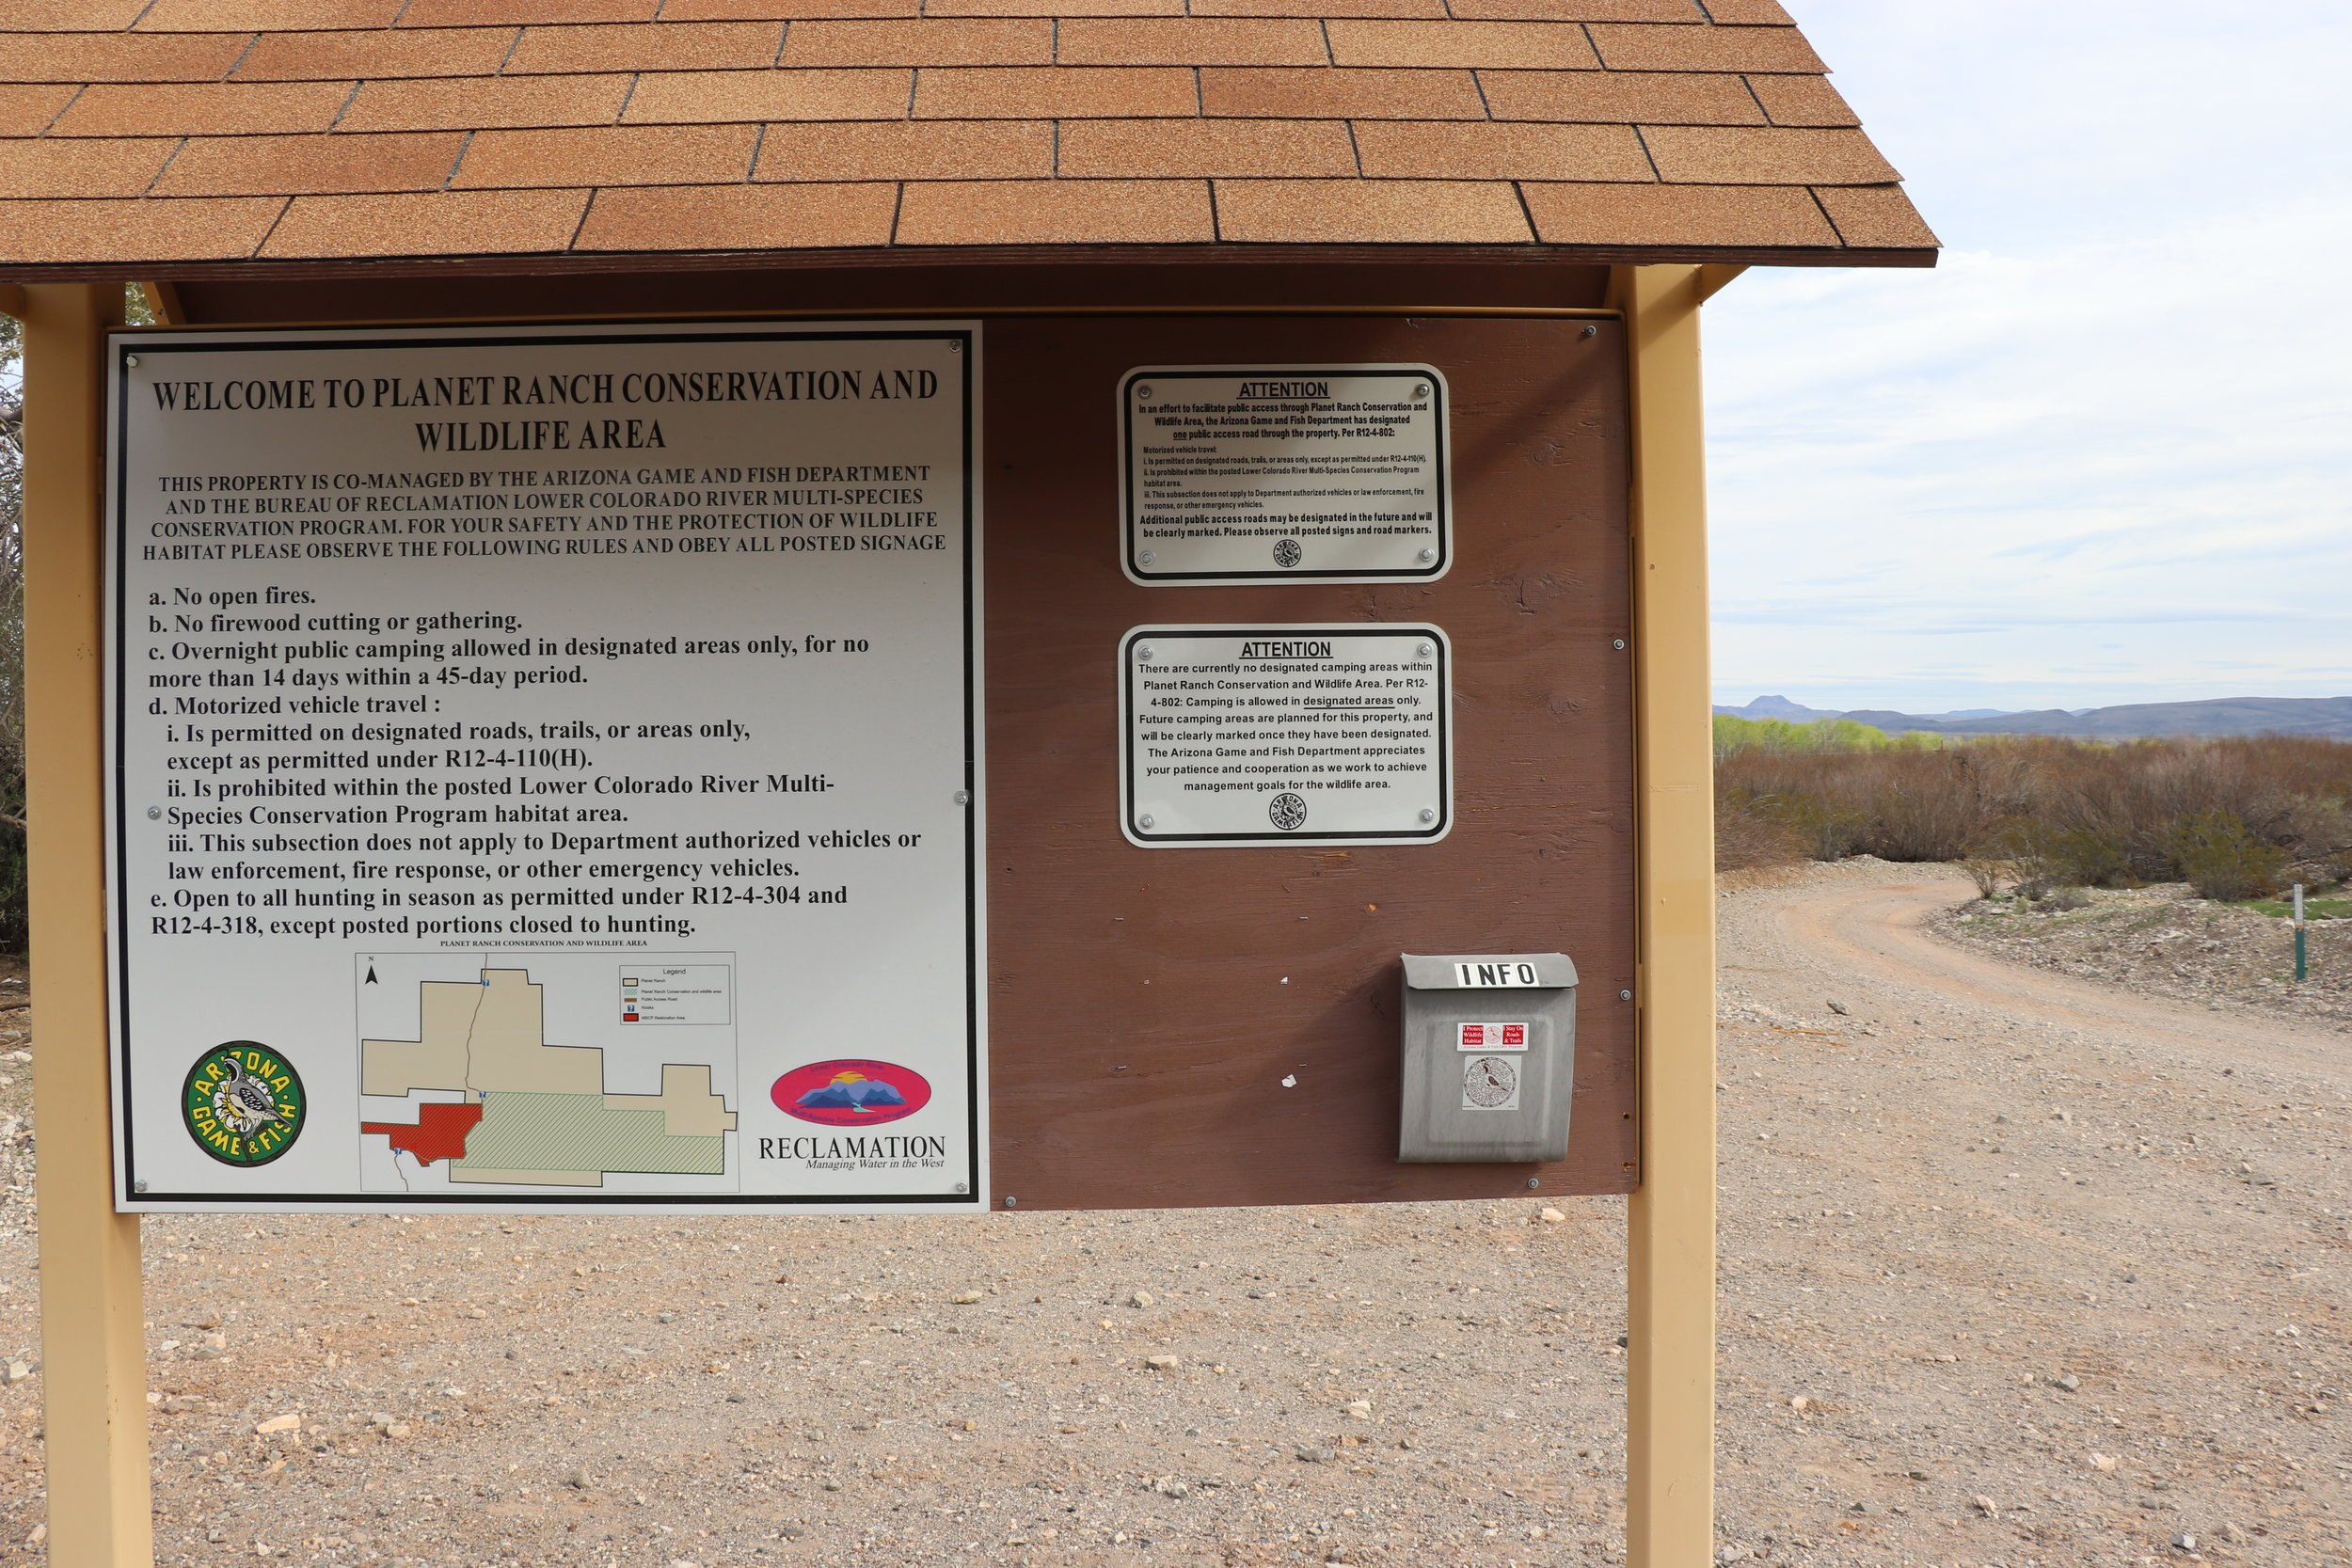 Recently opened, visitors are now able to traverse the Planet Ranch Conservation area.